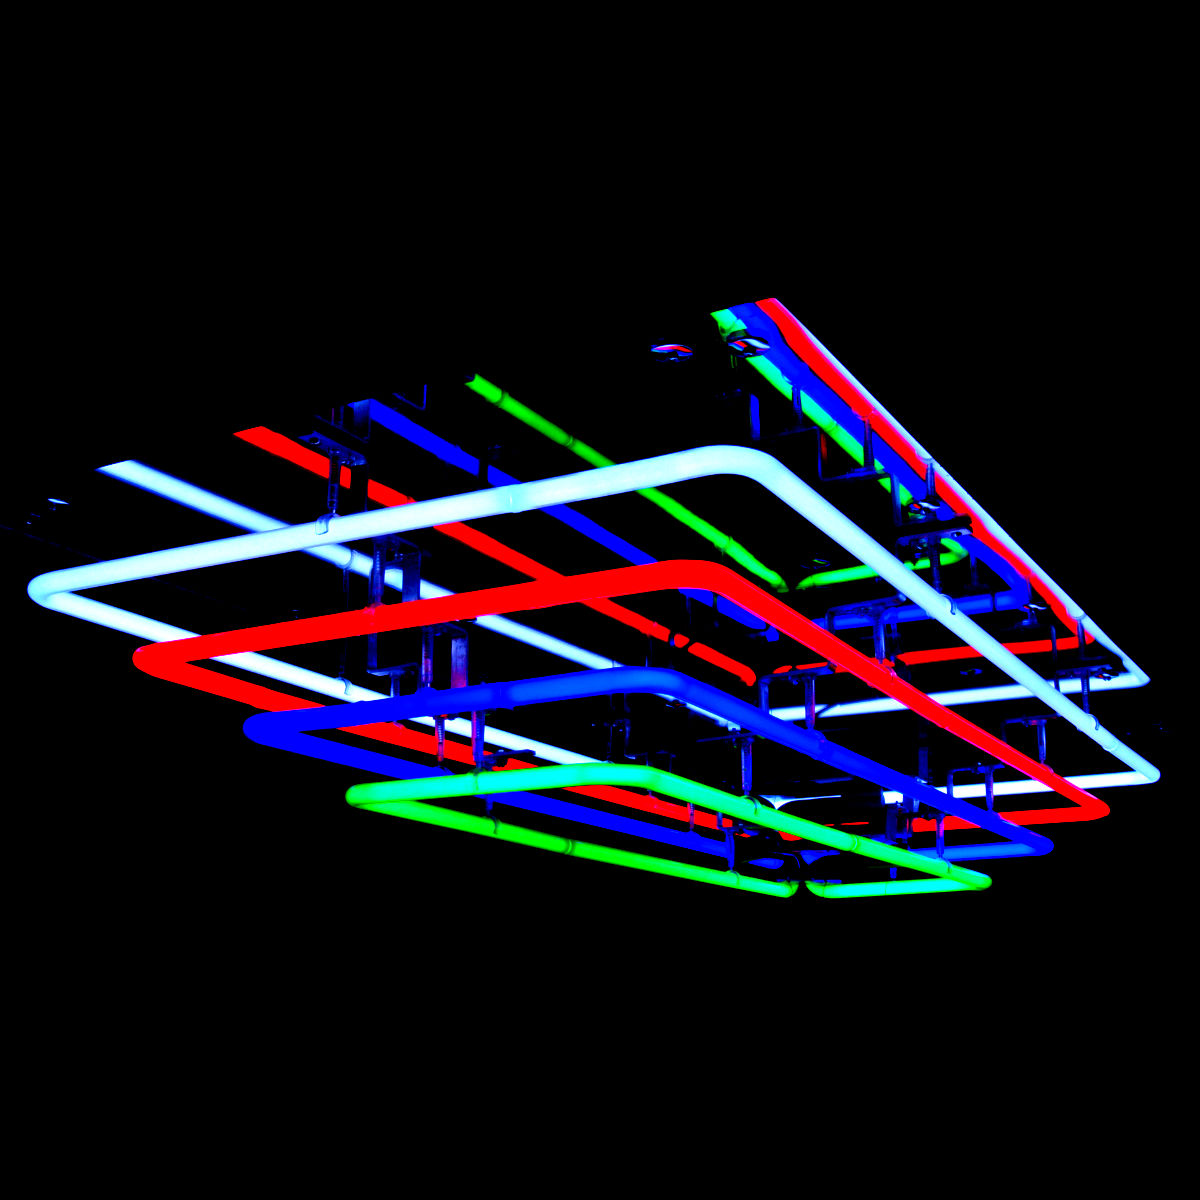 Custom Neon Light Fixtures by John Barton - Famous USA Neon Glass Artist - BartonNeonMagic.com